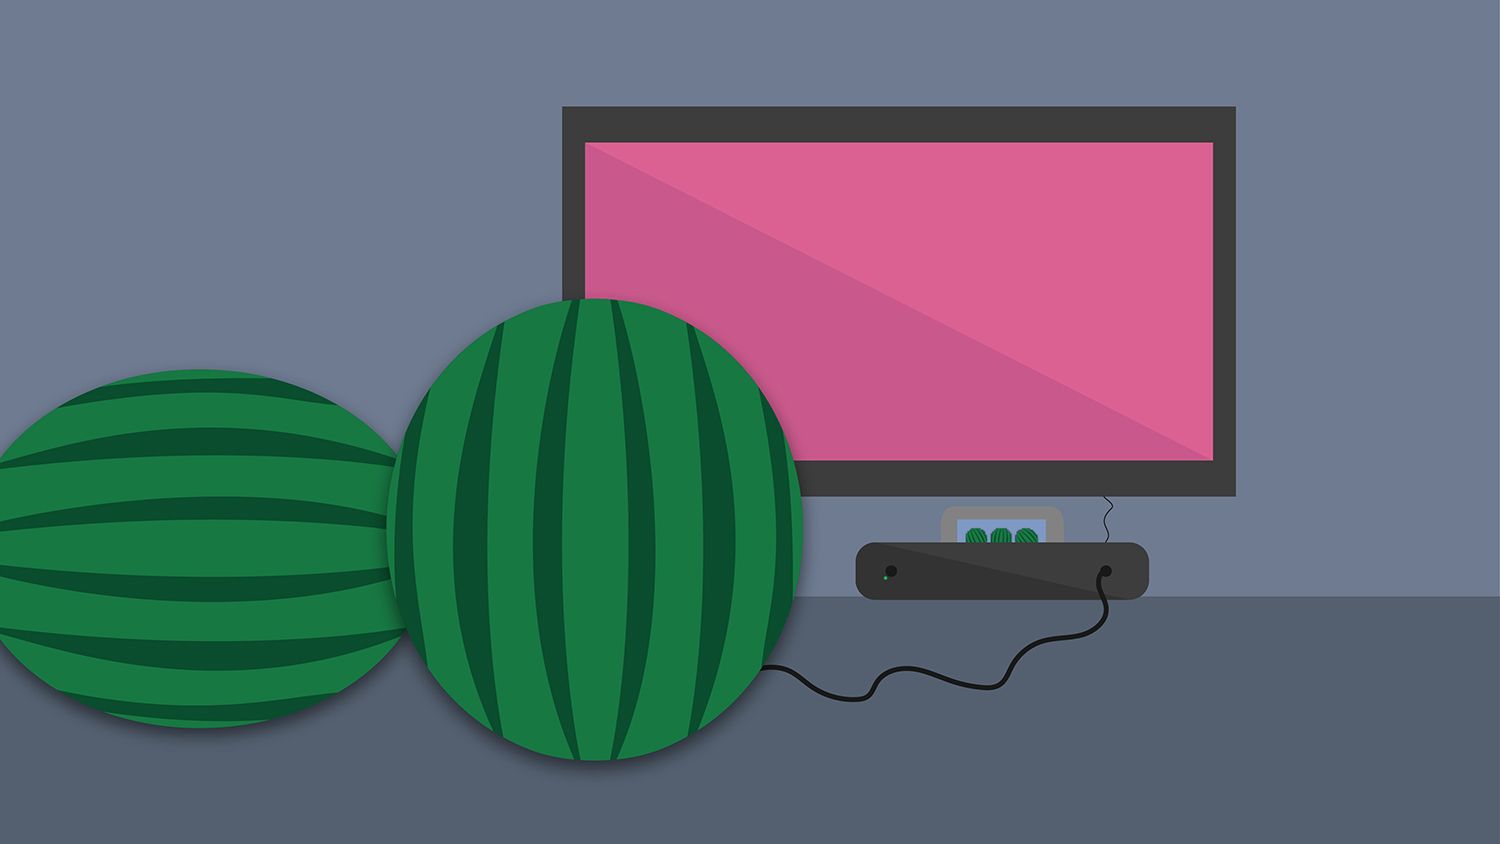 watermelon video games